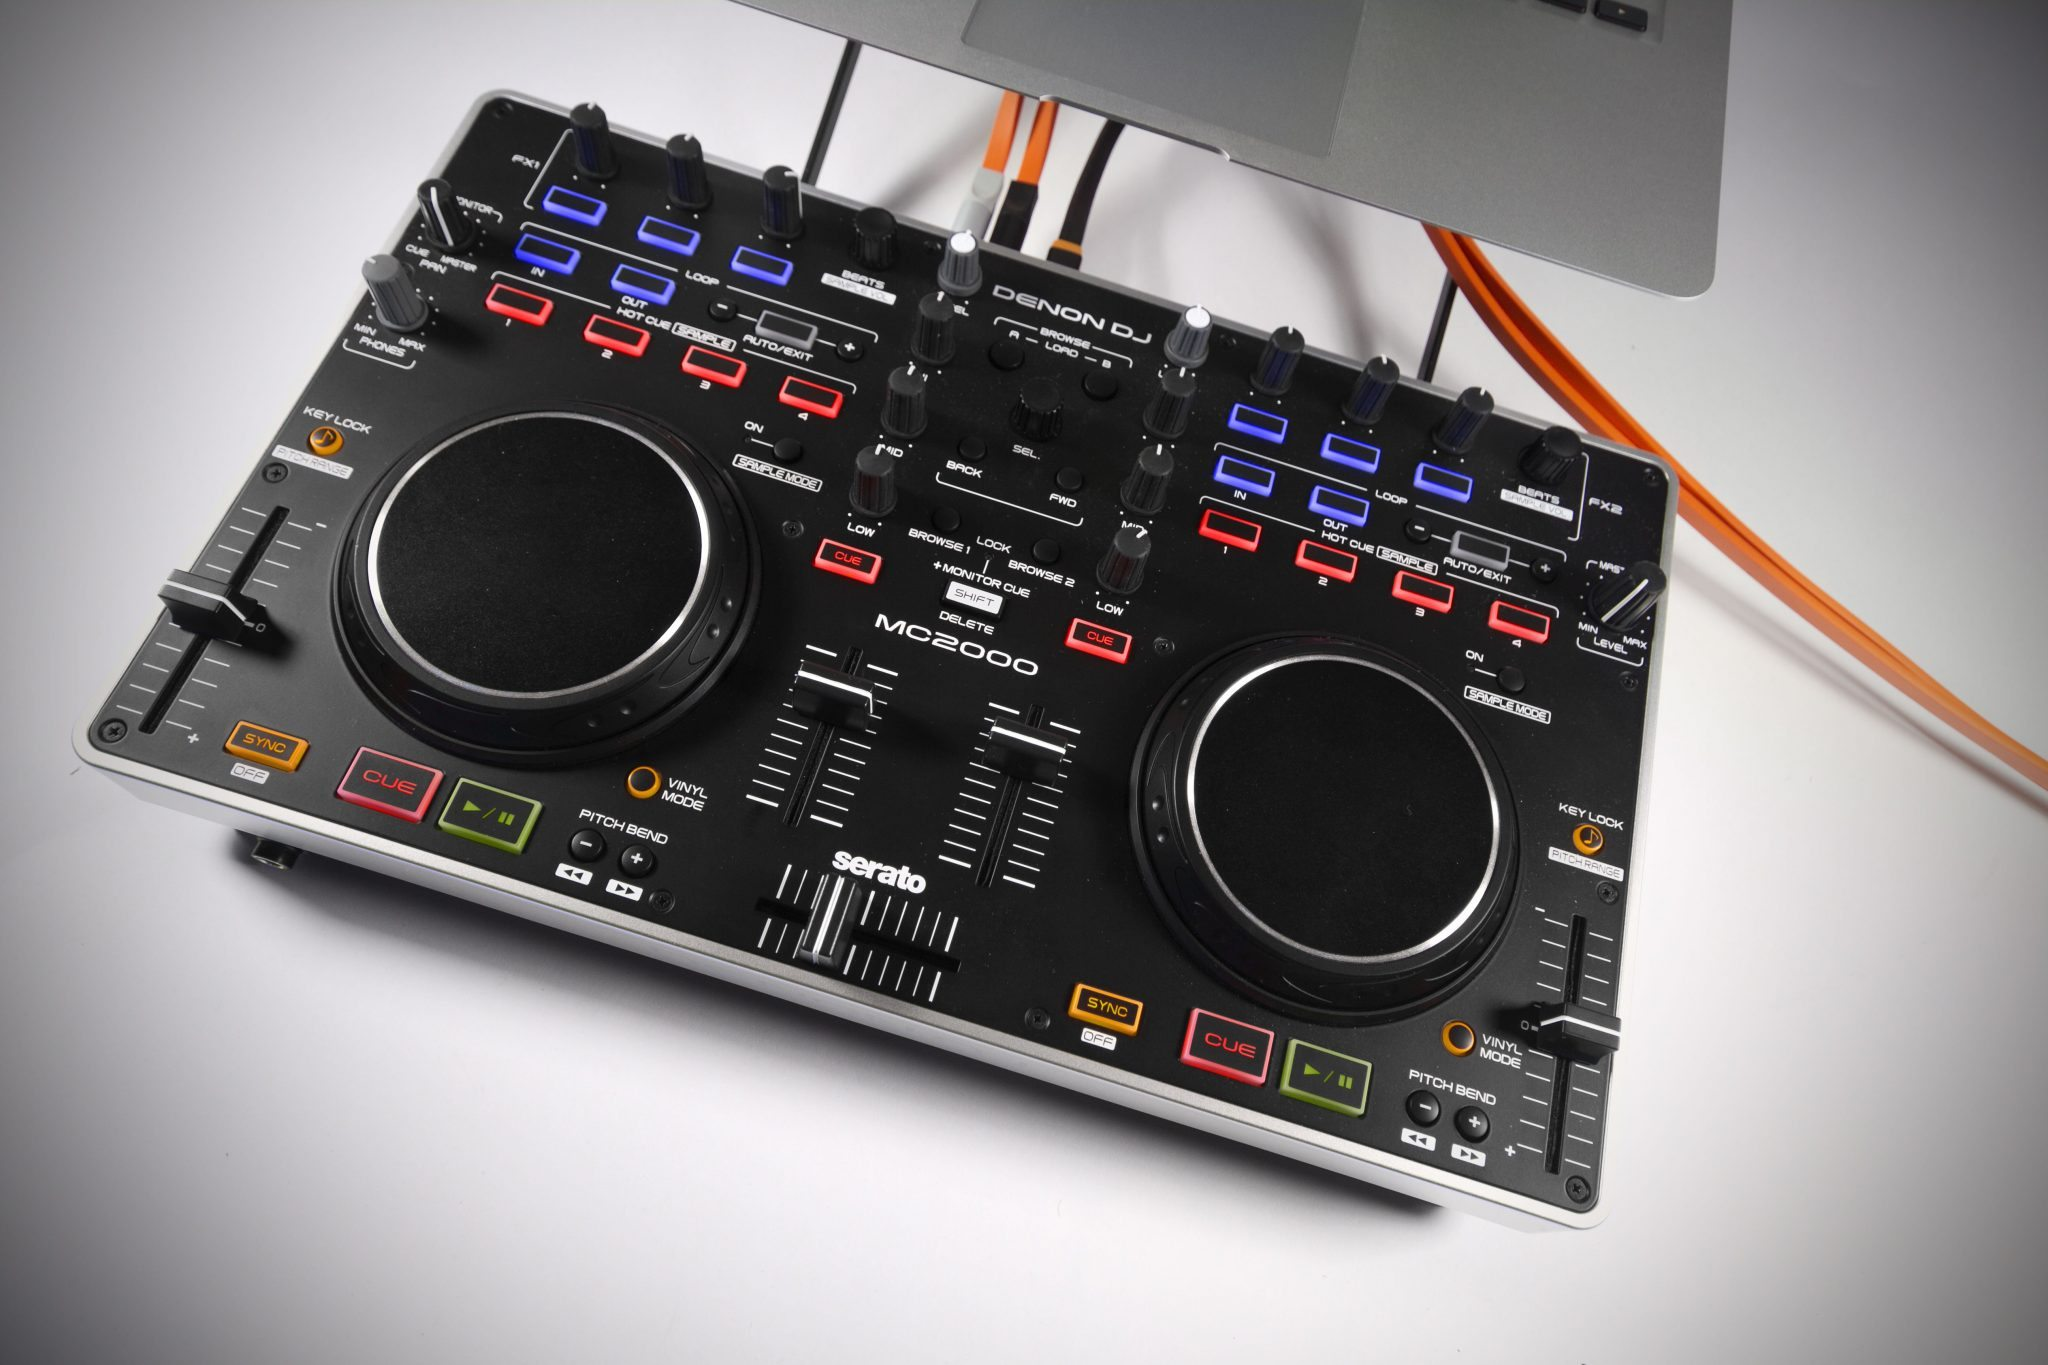 review denon dj mc2000 dj controller djworx. Black Bedroom Furniture Sets. Home Design Ideas